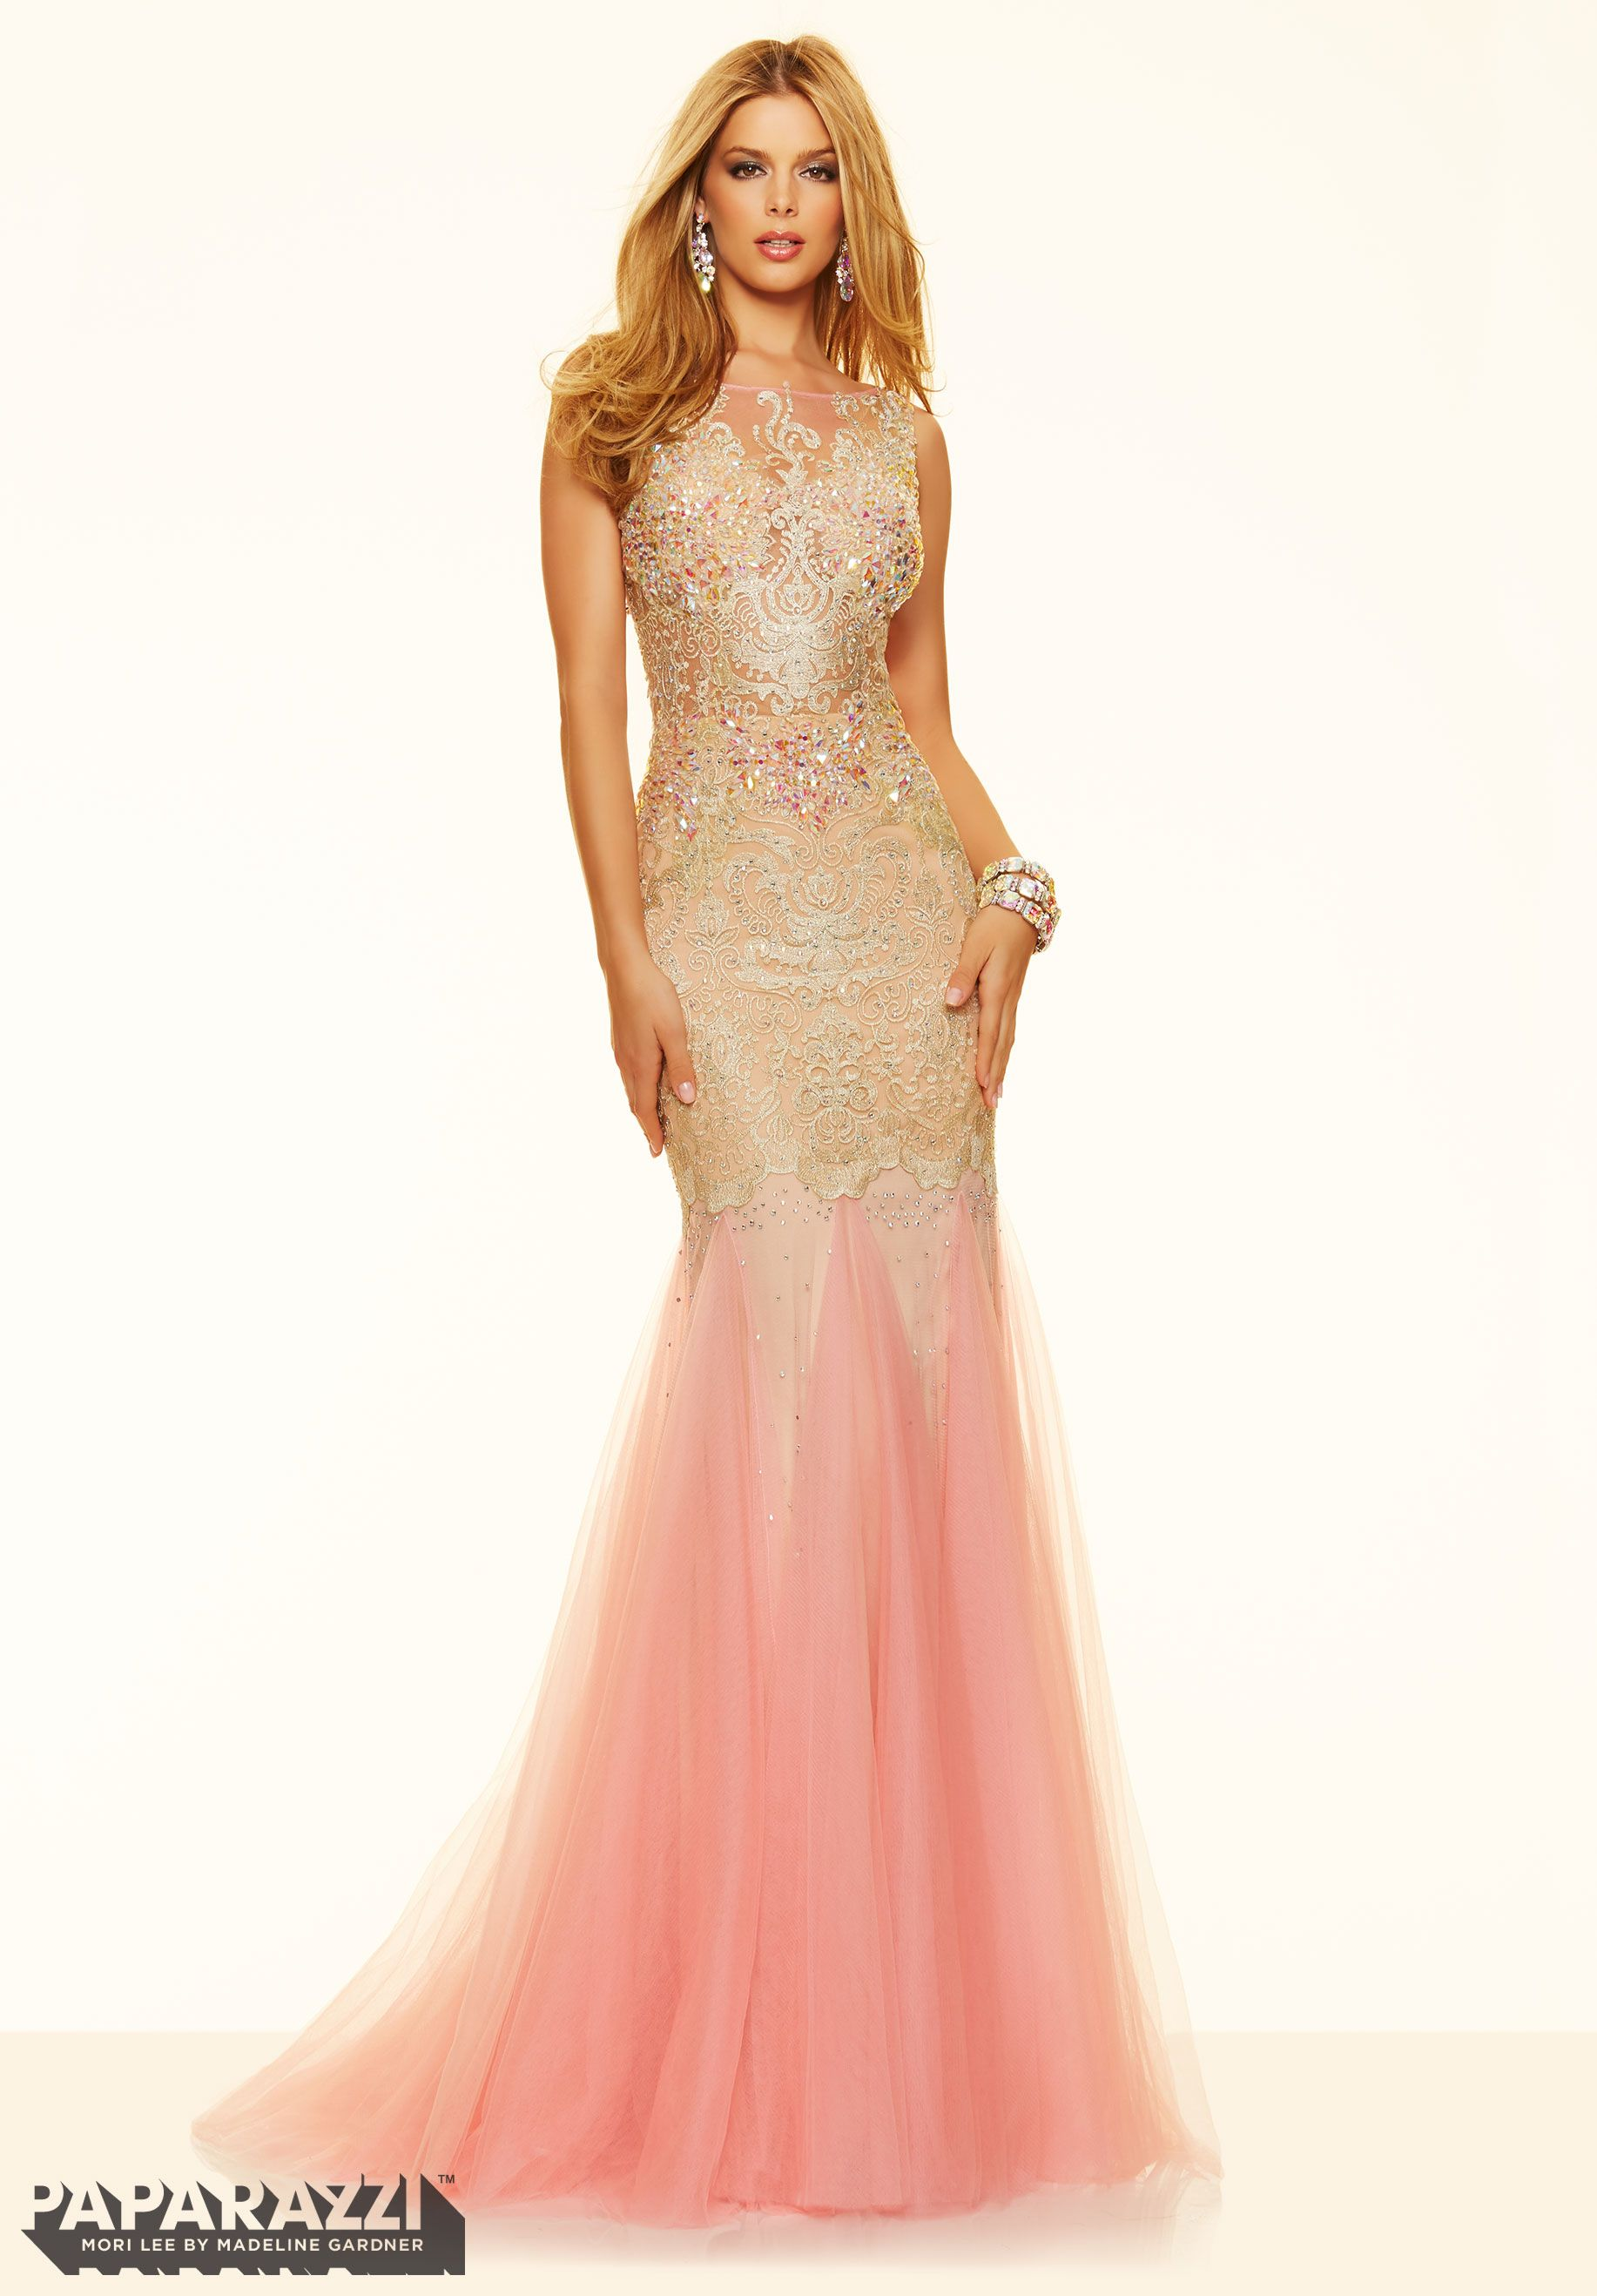 943c5df43 Prom dresses by Paparazzi Prom Lace and Beading on Net with 2 Tone Fly Away  Skirt Zipper Back Closure. Colors Available  Rose Gold